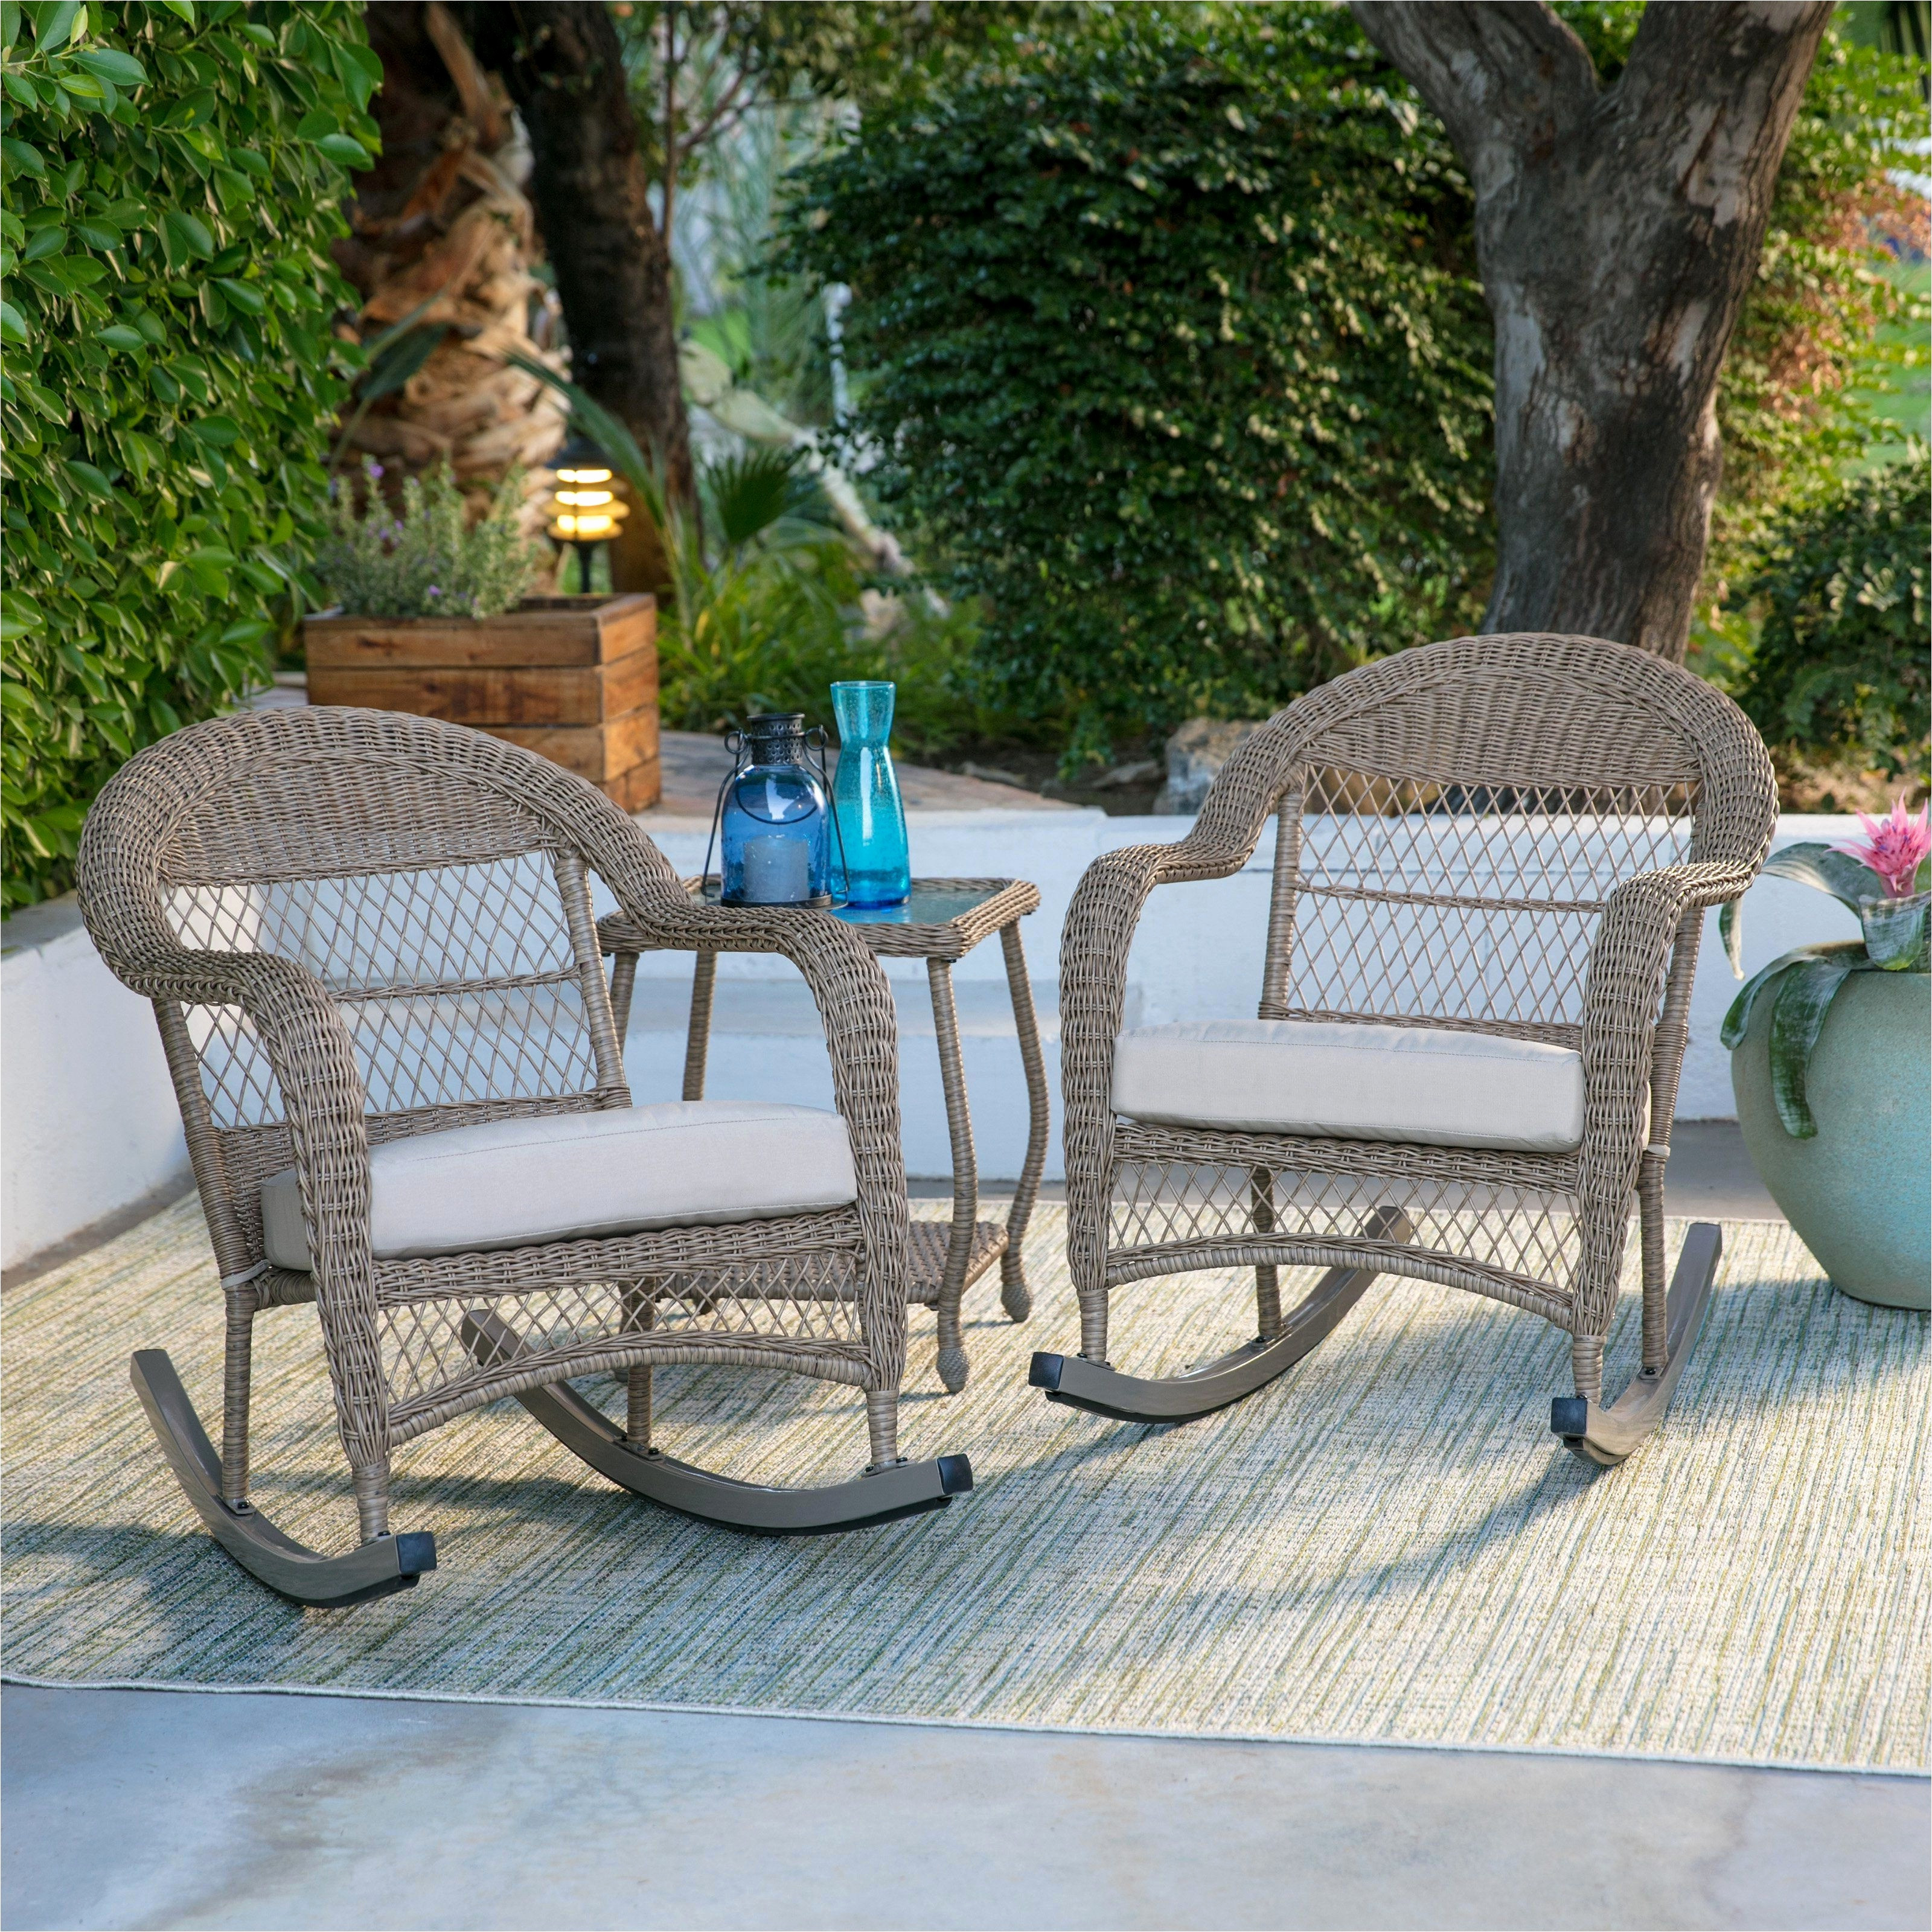 Sofas De Exterior Wddj sofas De Exterior Exterior Home Materials Best White Outdoor Lounge